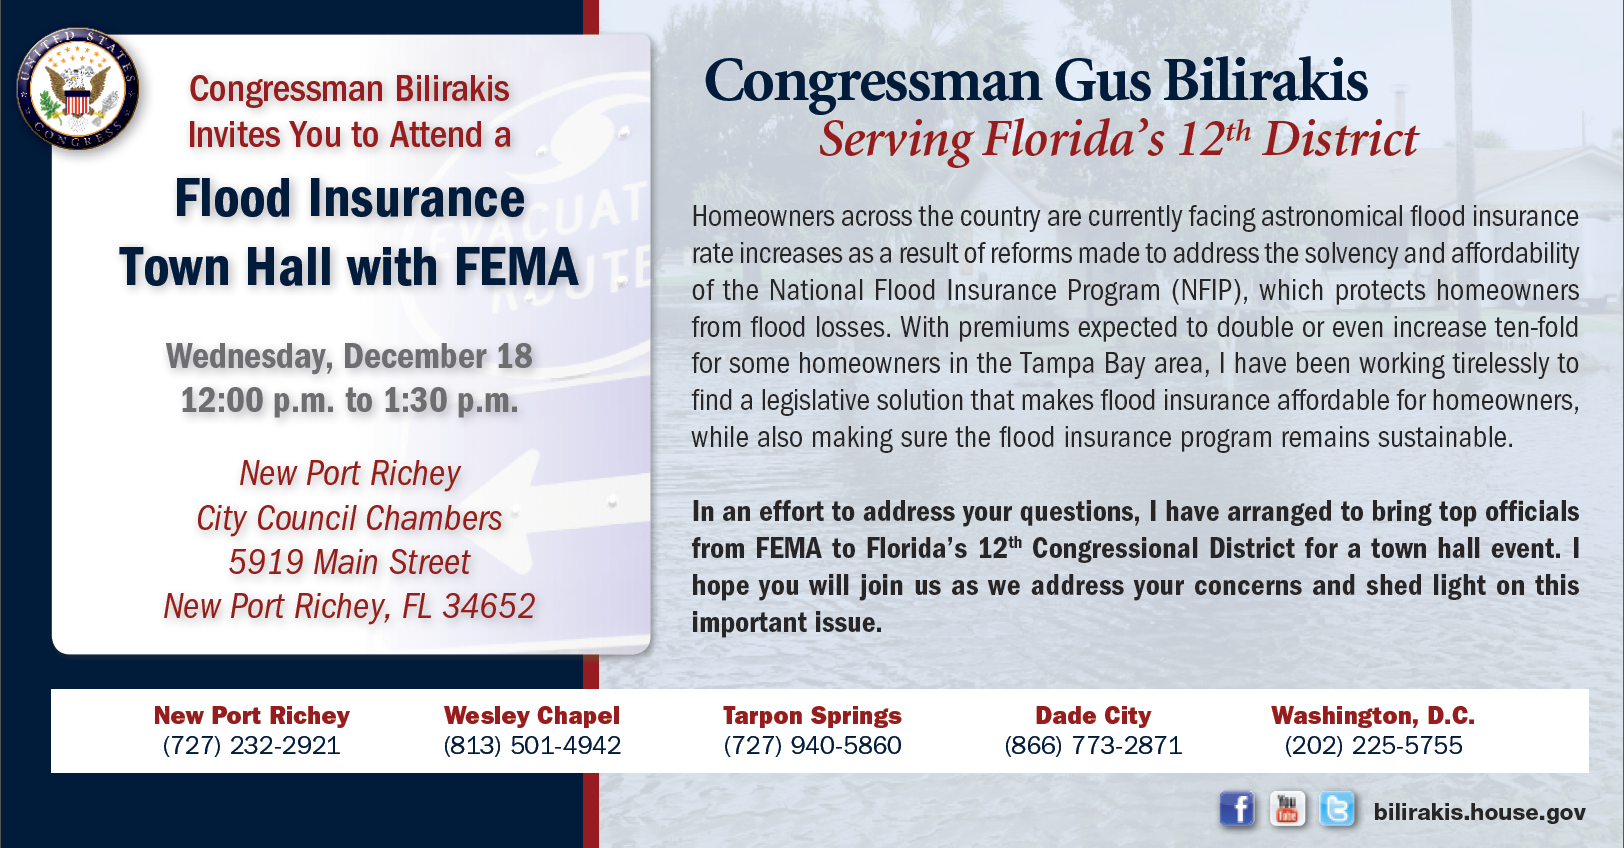 I look fwd to speaking w everyone at my #FloodInsurance Town Hall today. If you have any ?s, pls call: 813-501-4942. http://t.co/DJMT16yNsR